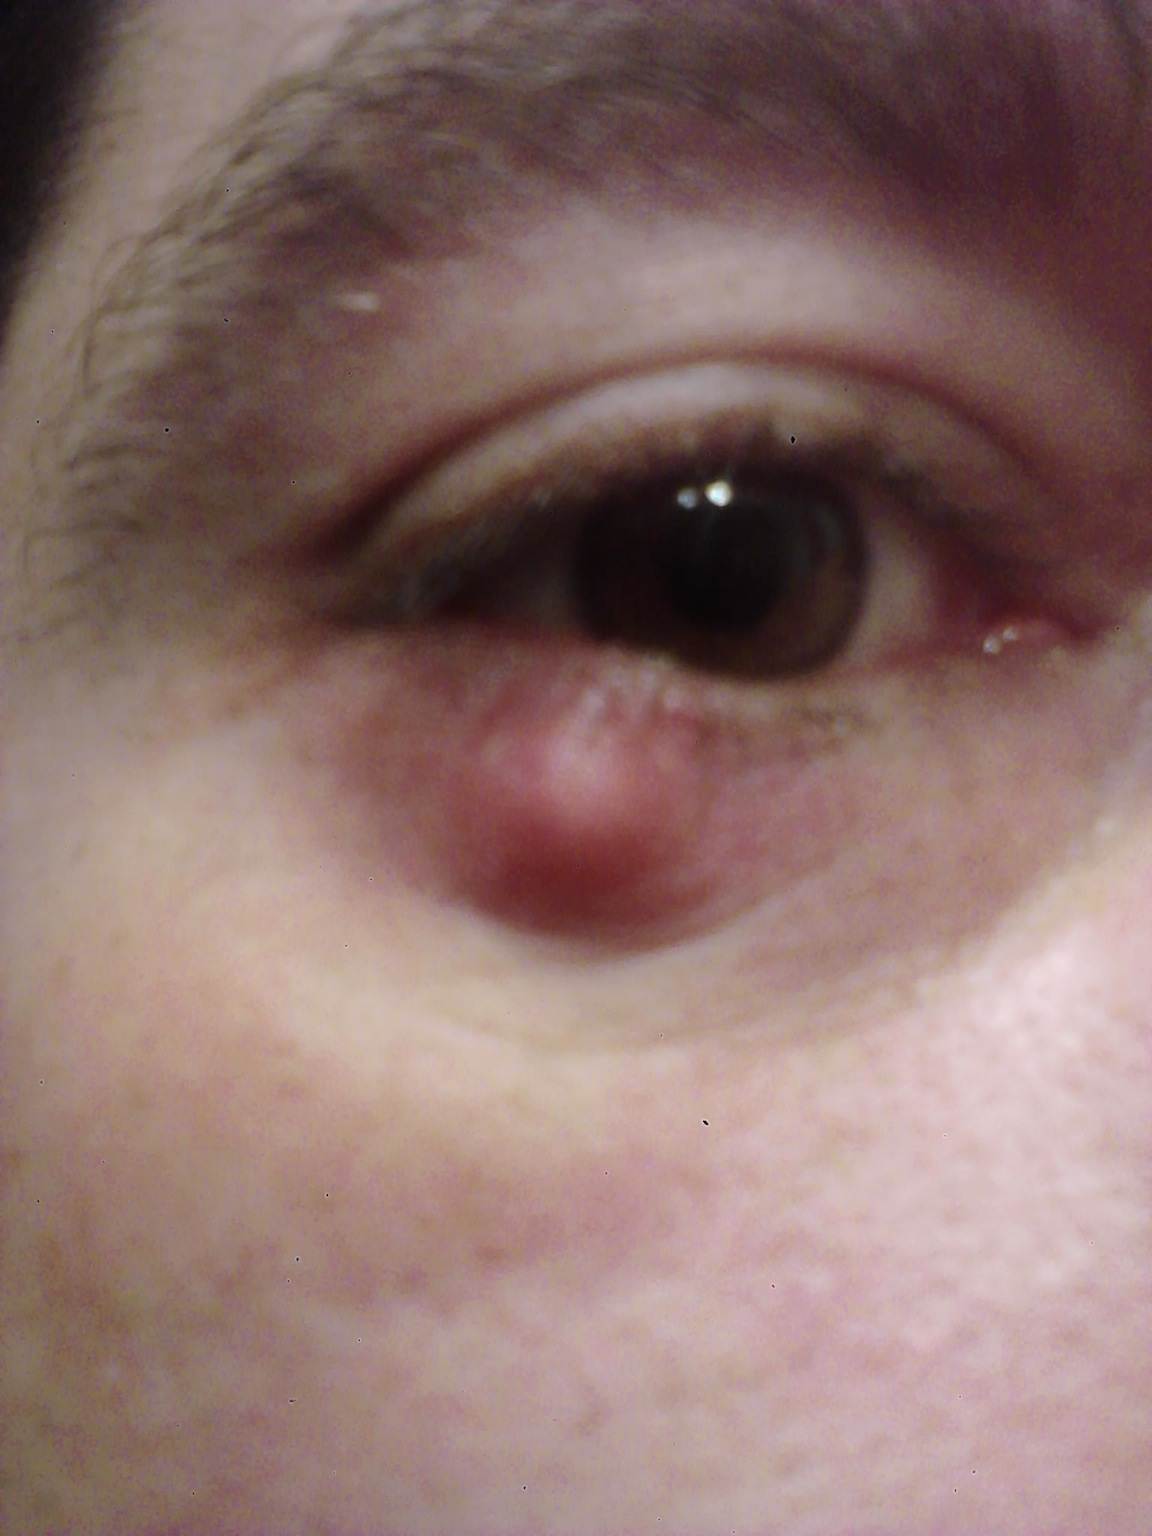 Sty on lower eyelid; need advice   health and wellness  doctors ...